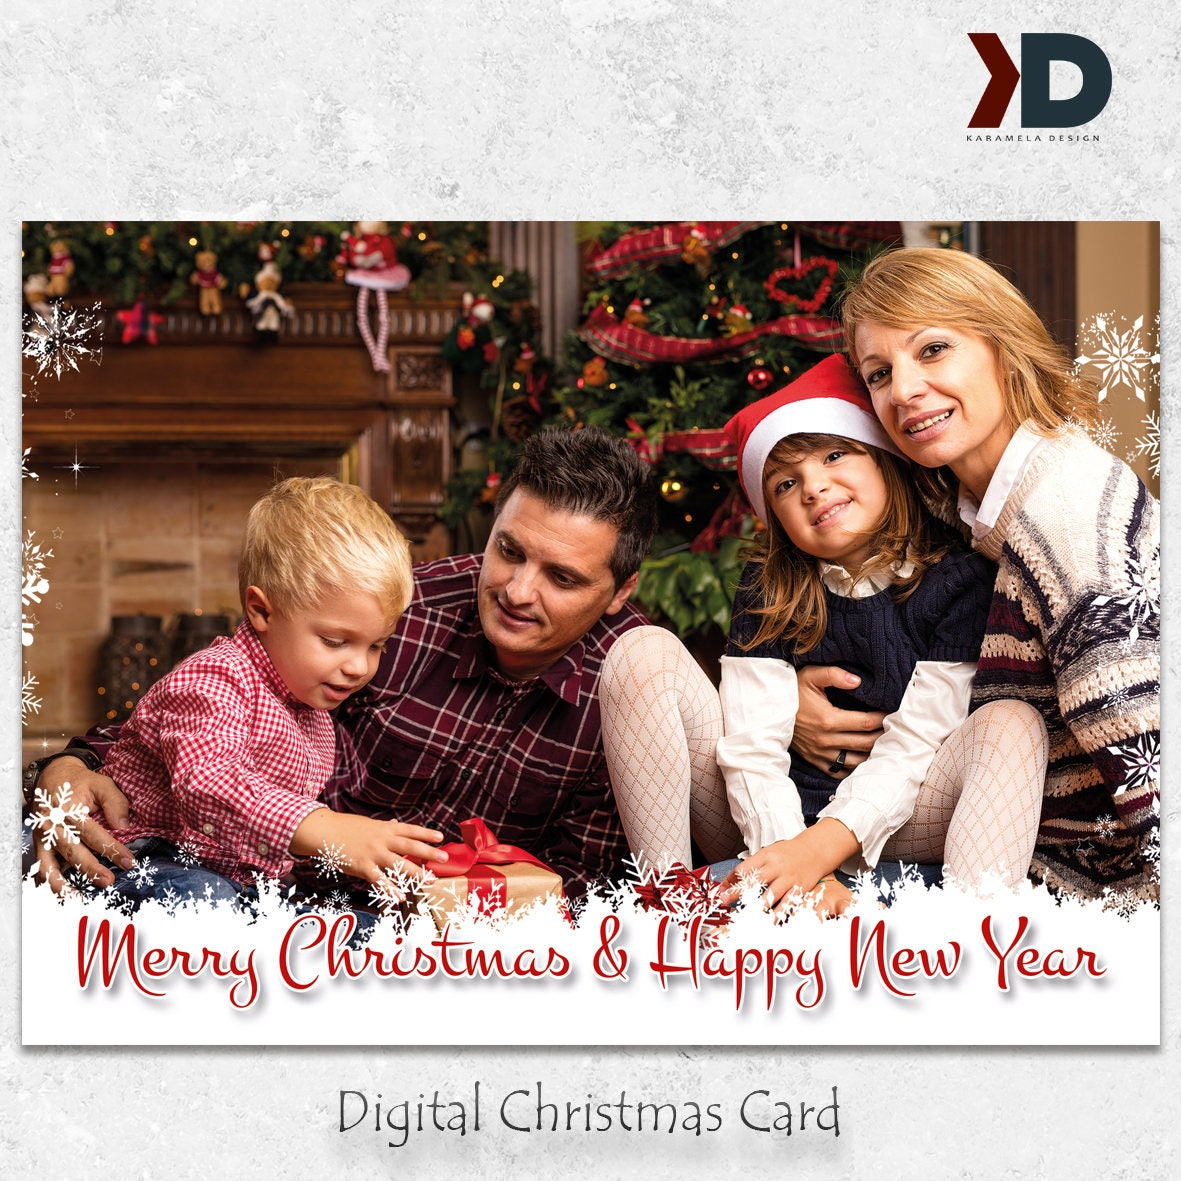 Happy holidays digital card printable christmas greeting card happy holidays digital card printable christmas greeting card card with your family photo kristyandbryce Image collections